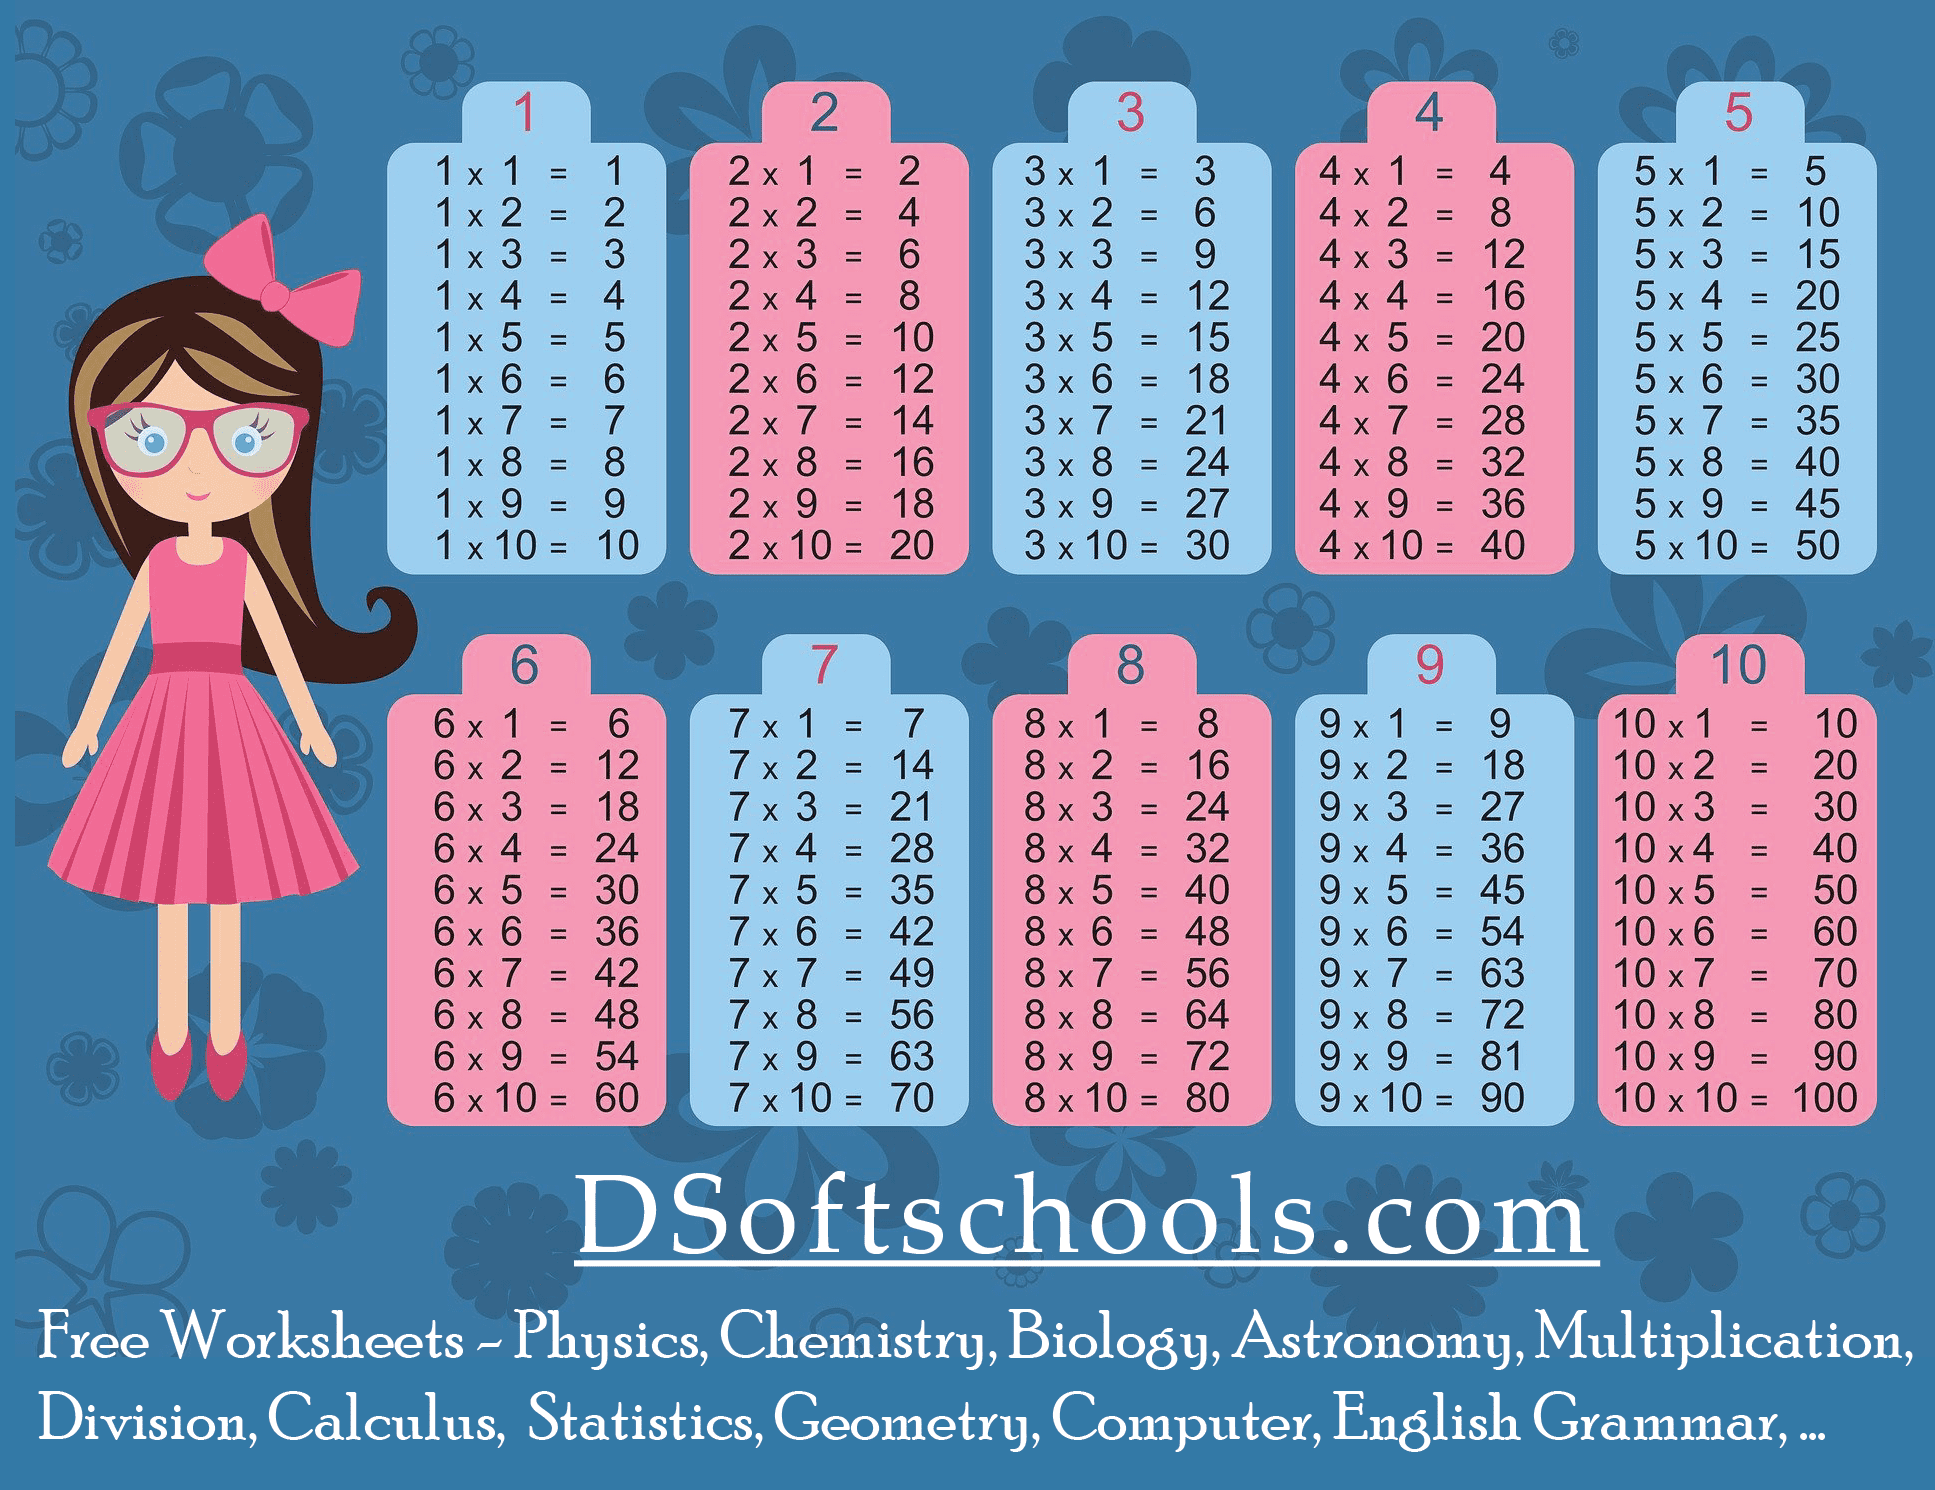 Free Printable Worksheets On Almost Every Subject In